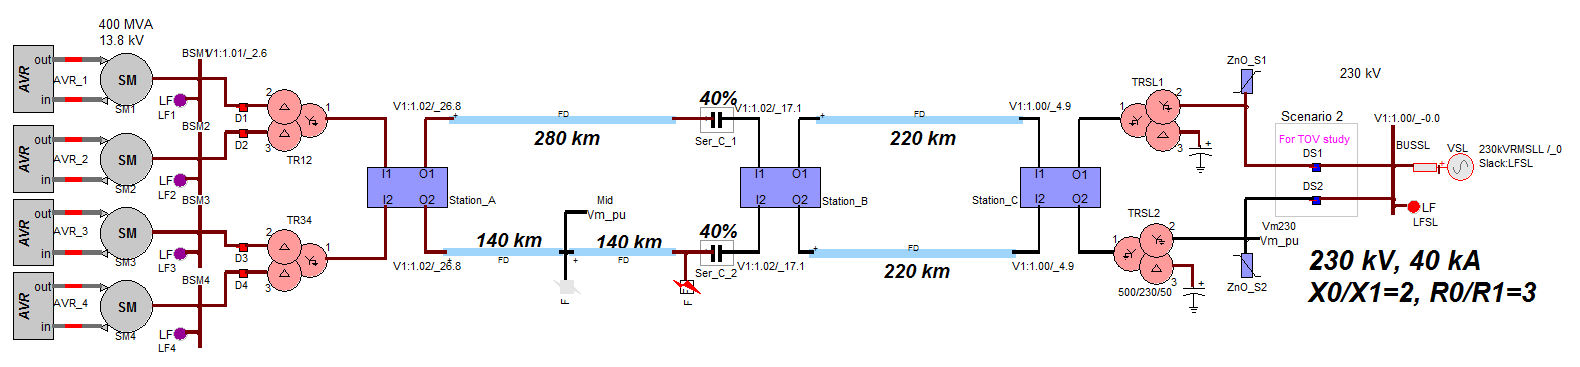 transient-stability-case-of-230-kV-network